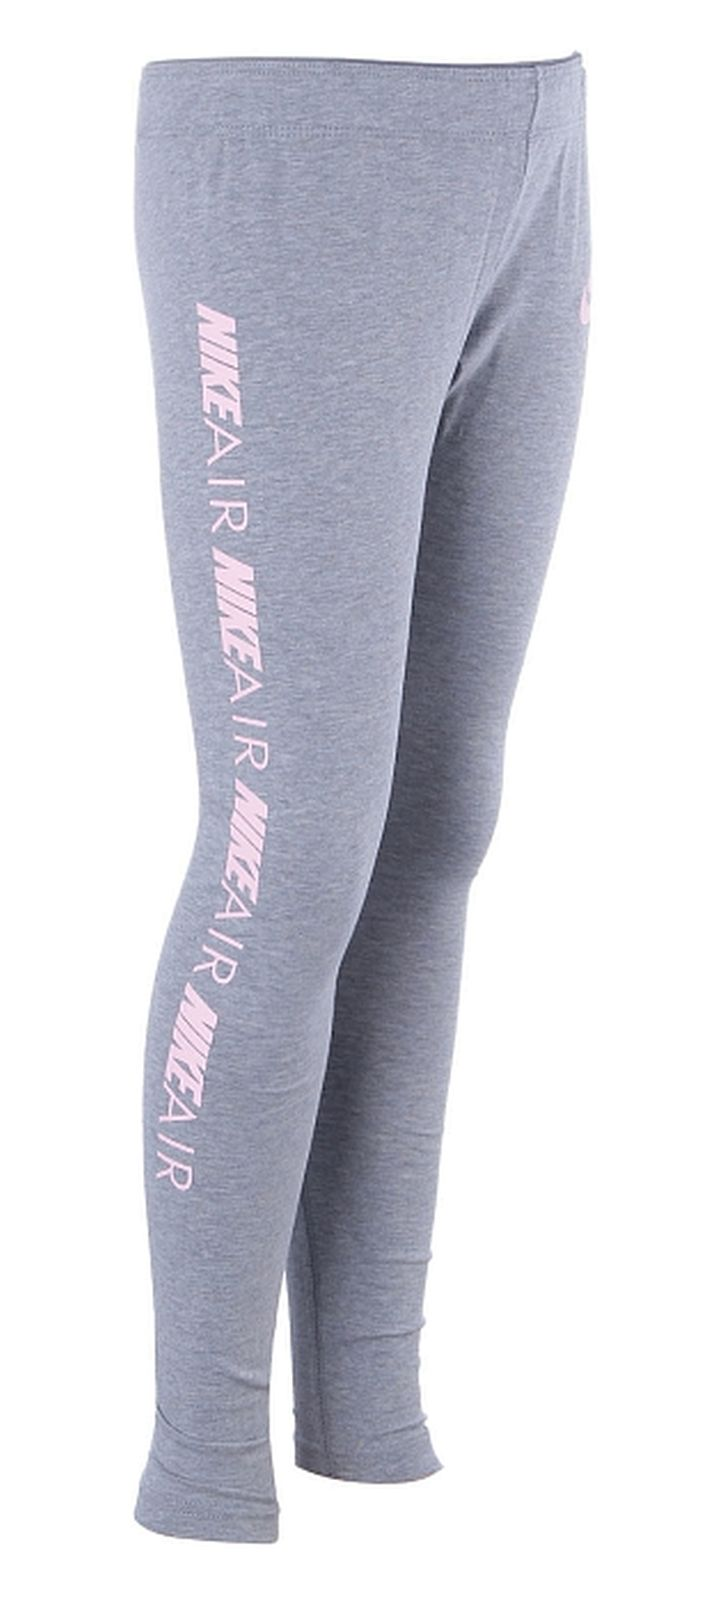 Nike Mädchen Sport-Leggings Fitnesshose Trainingshose NIKE NSW FAVORITES grau